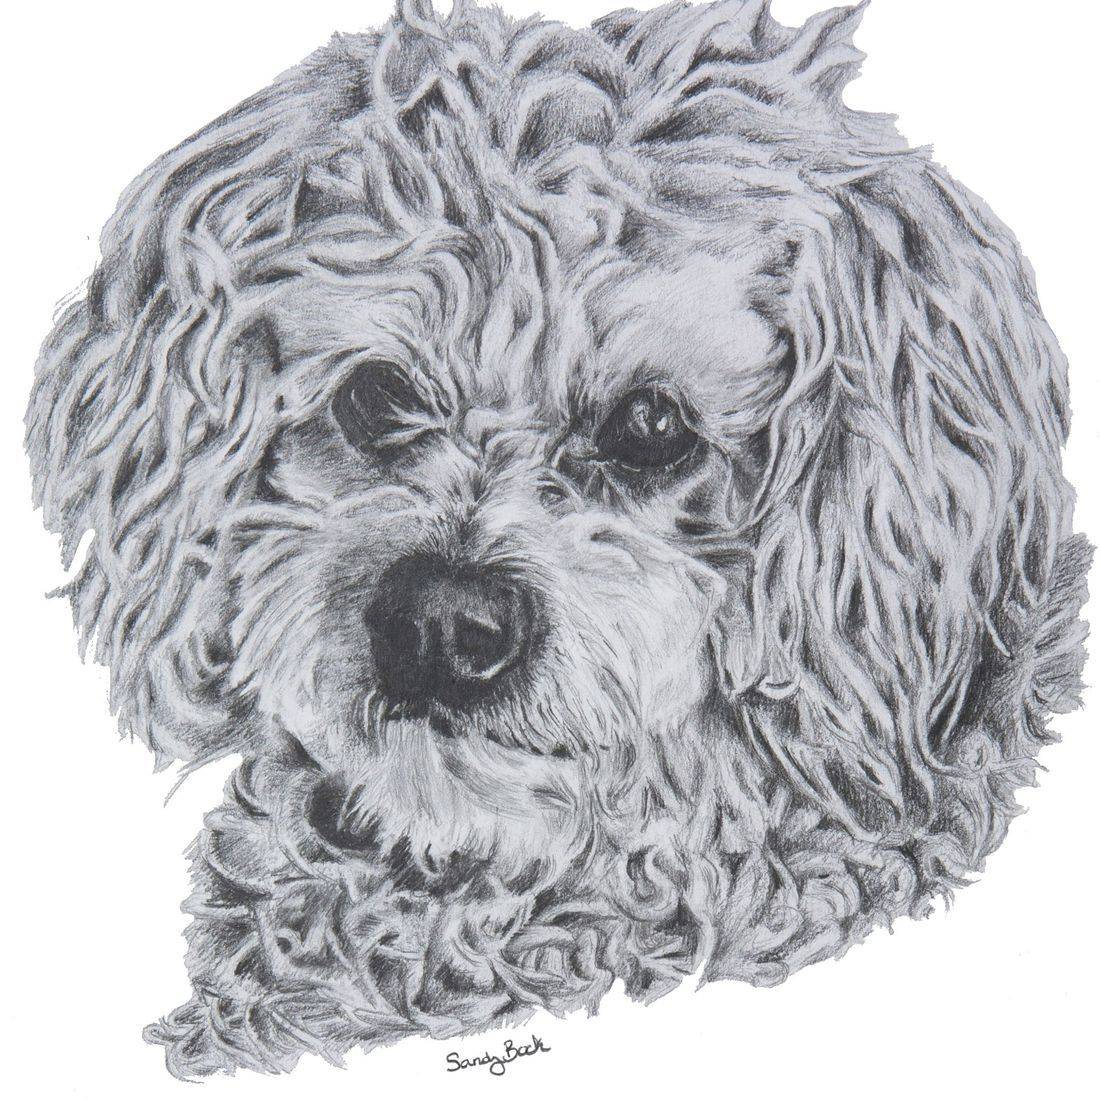 pet portrait, sandy bock logo, pet art, artist